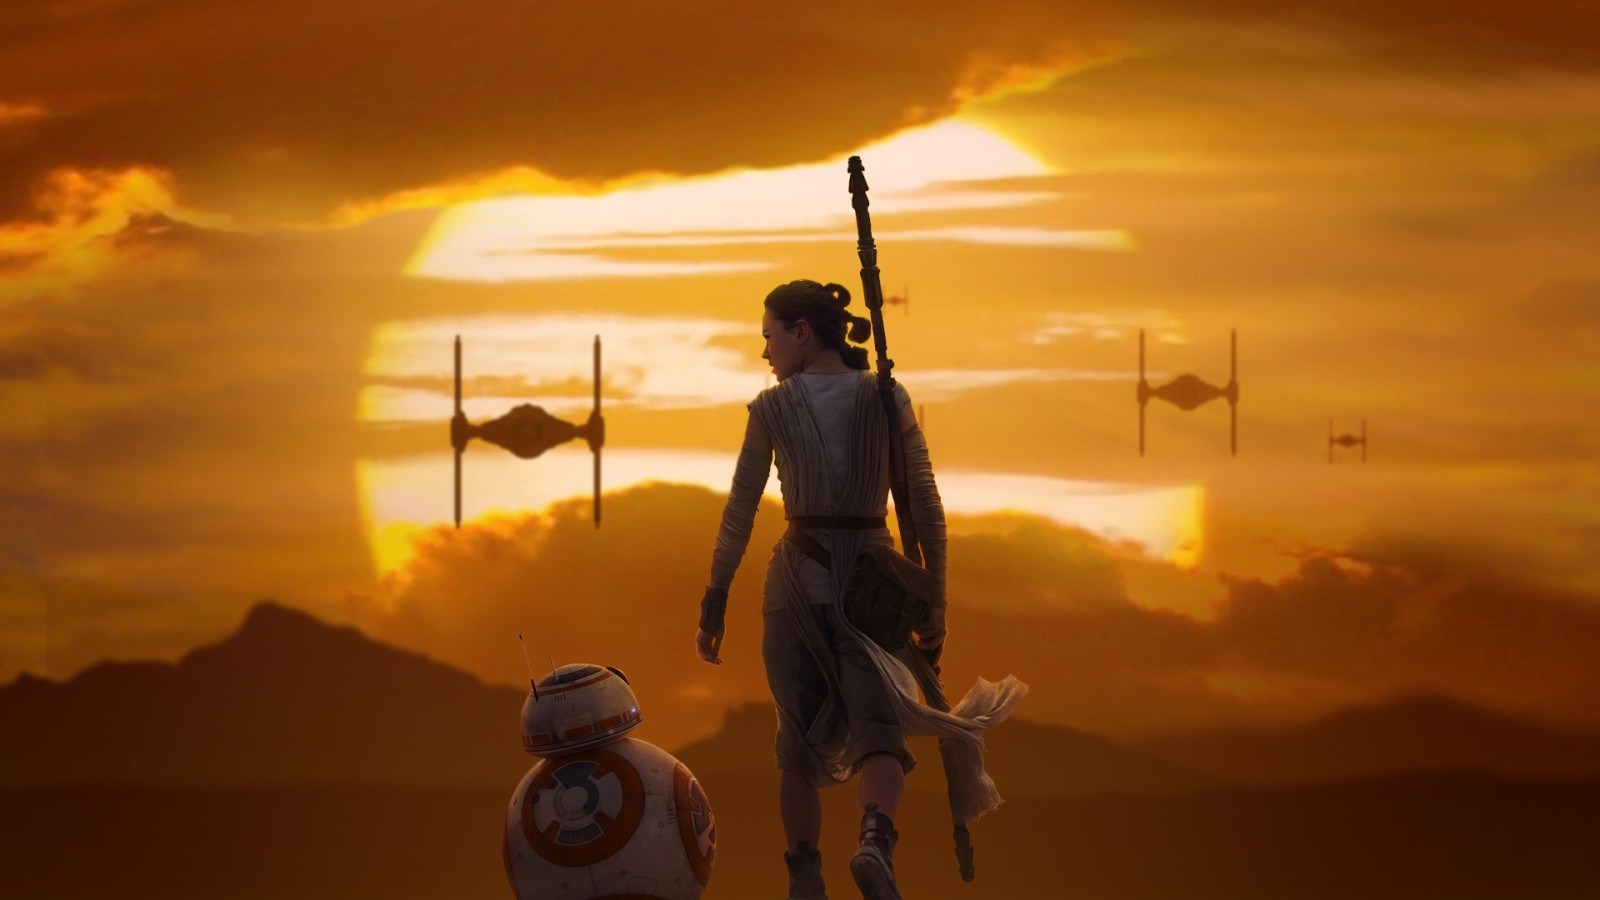 Star Wars Episode Viii Photos Show New Sets For First Time